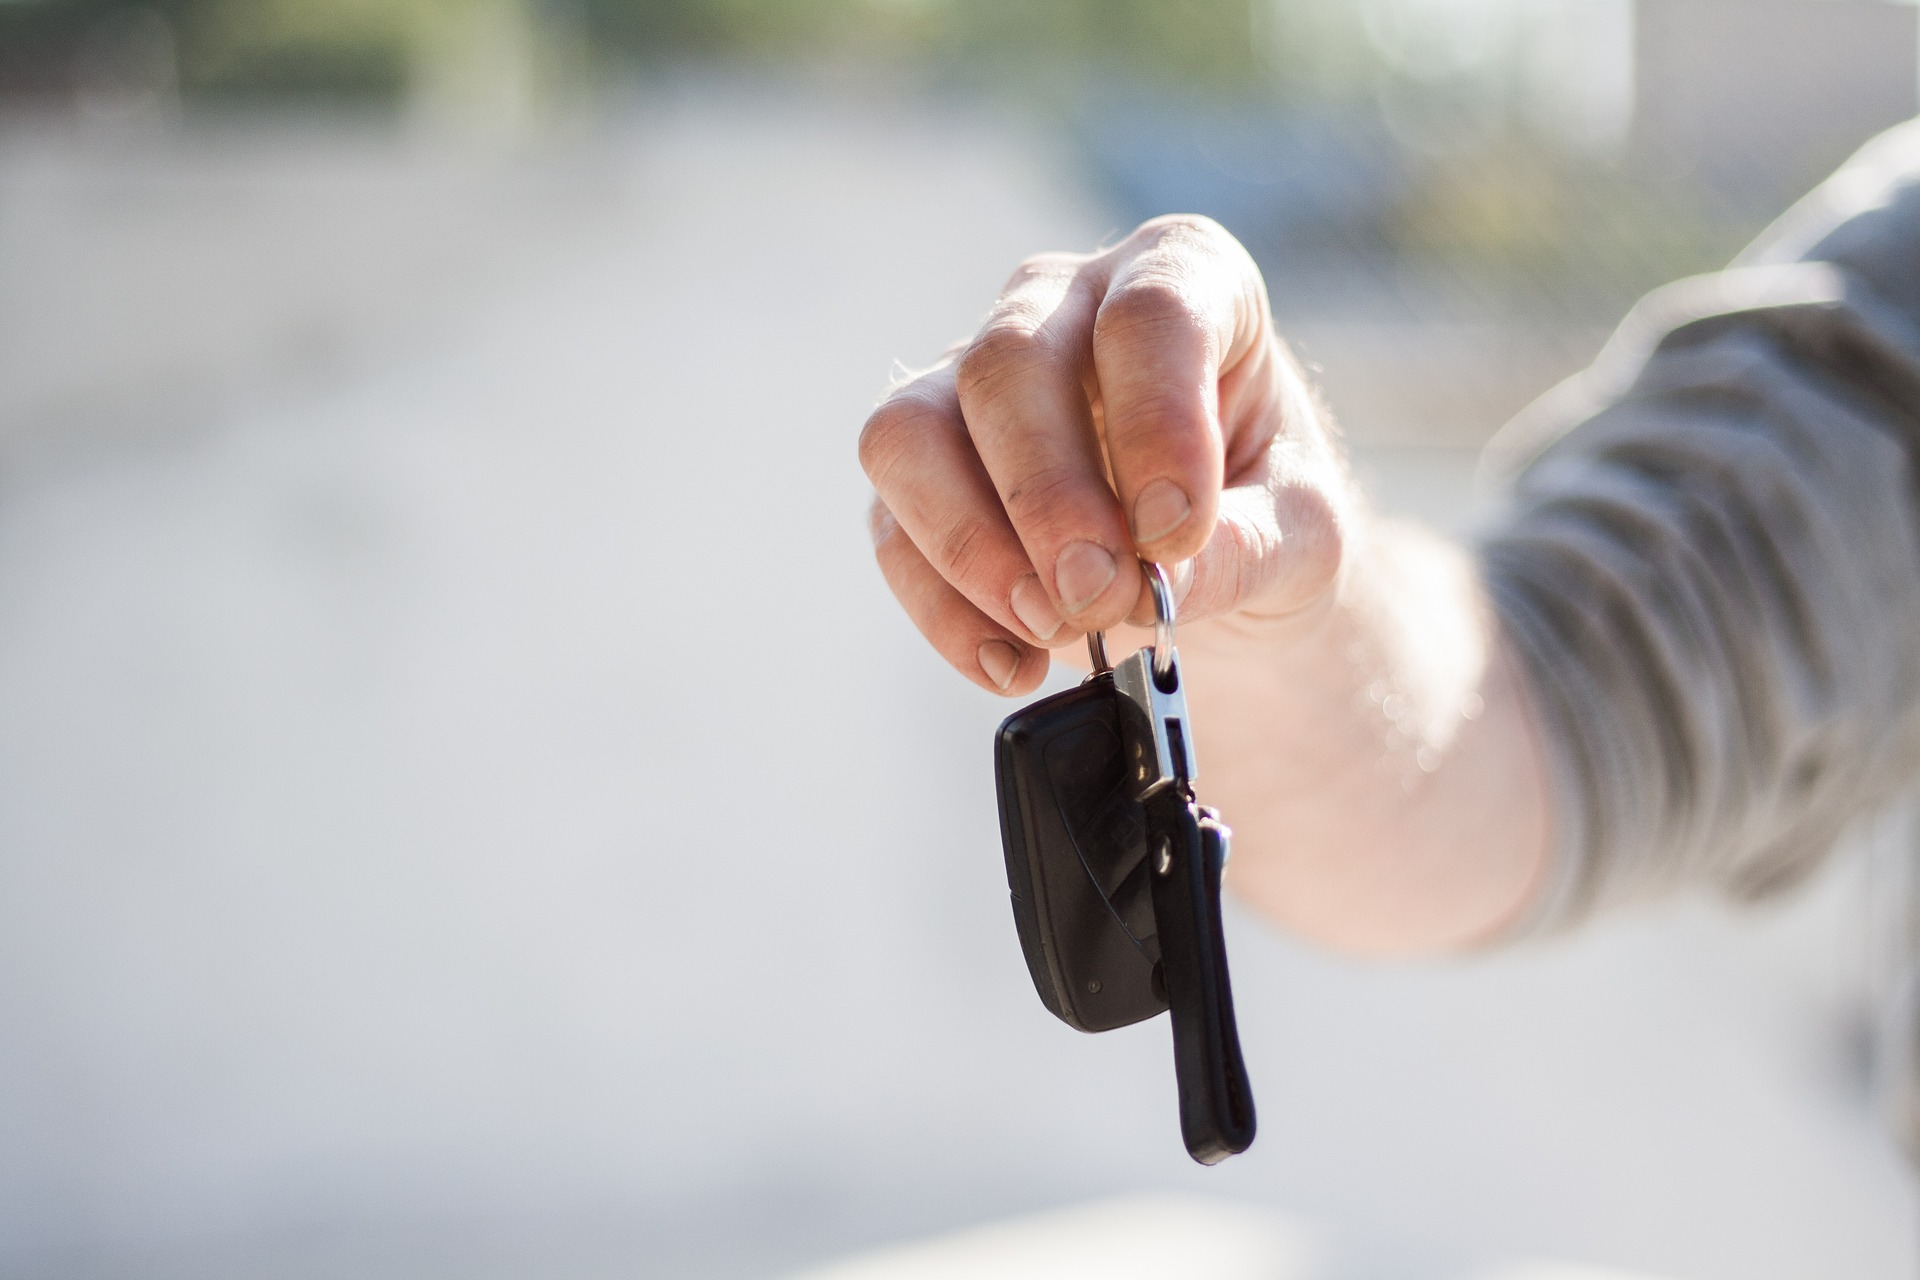 Four common driving test misconceptions